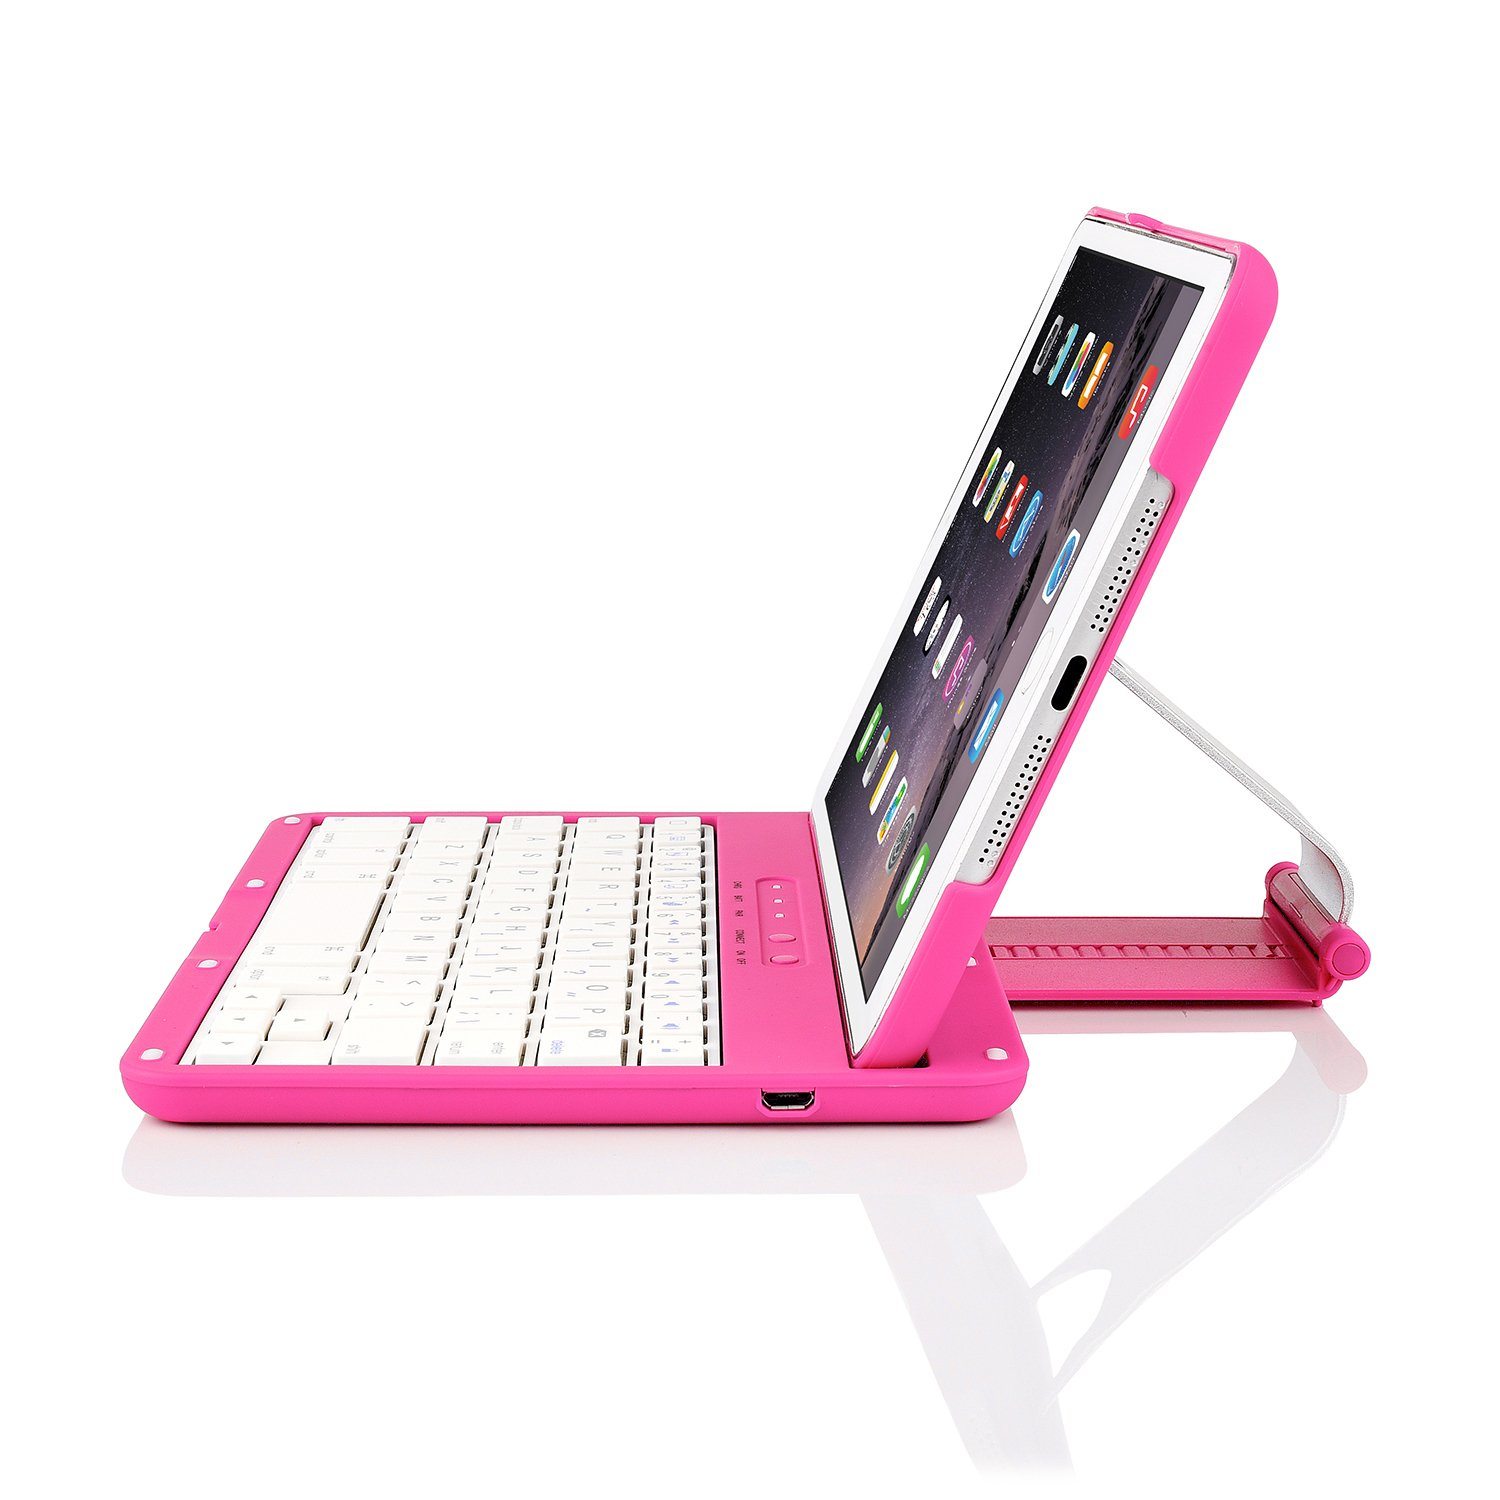 iNNEXT Aluminum 360 Swivel Rotating Stand Case Cover Built-in Bluetooth Keyboard for ipad Mini 1 2 3 with Retina Display (Hot Pink) by iNNEXT (Image #4)